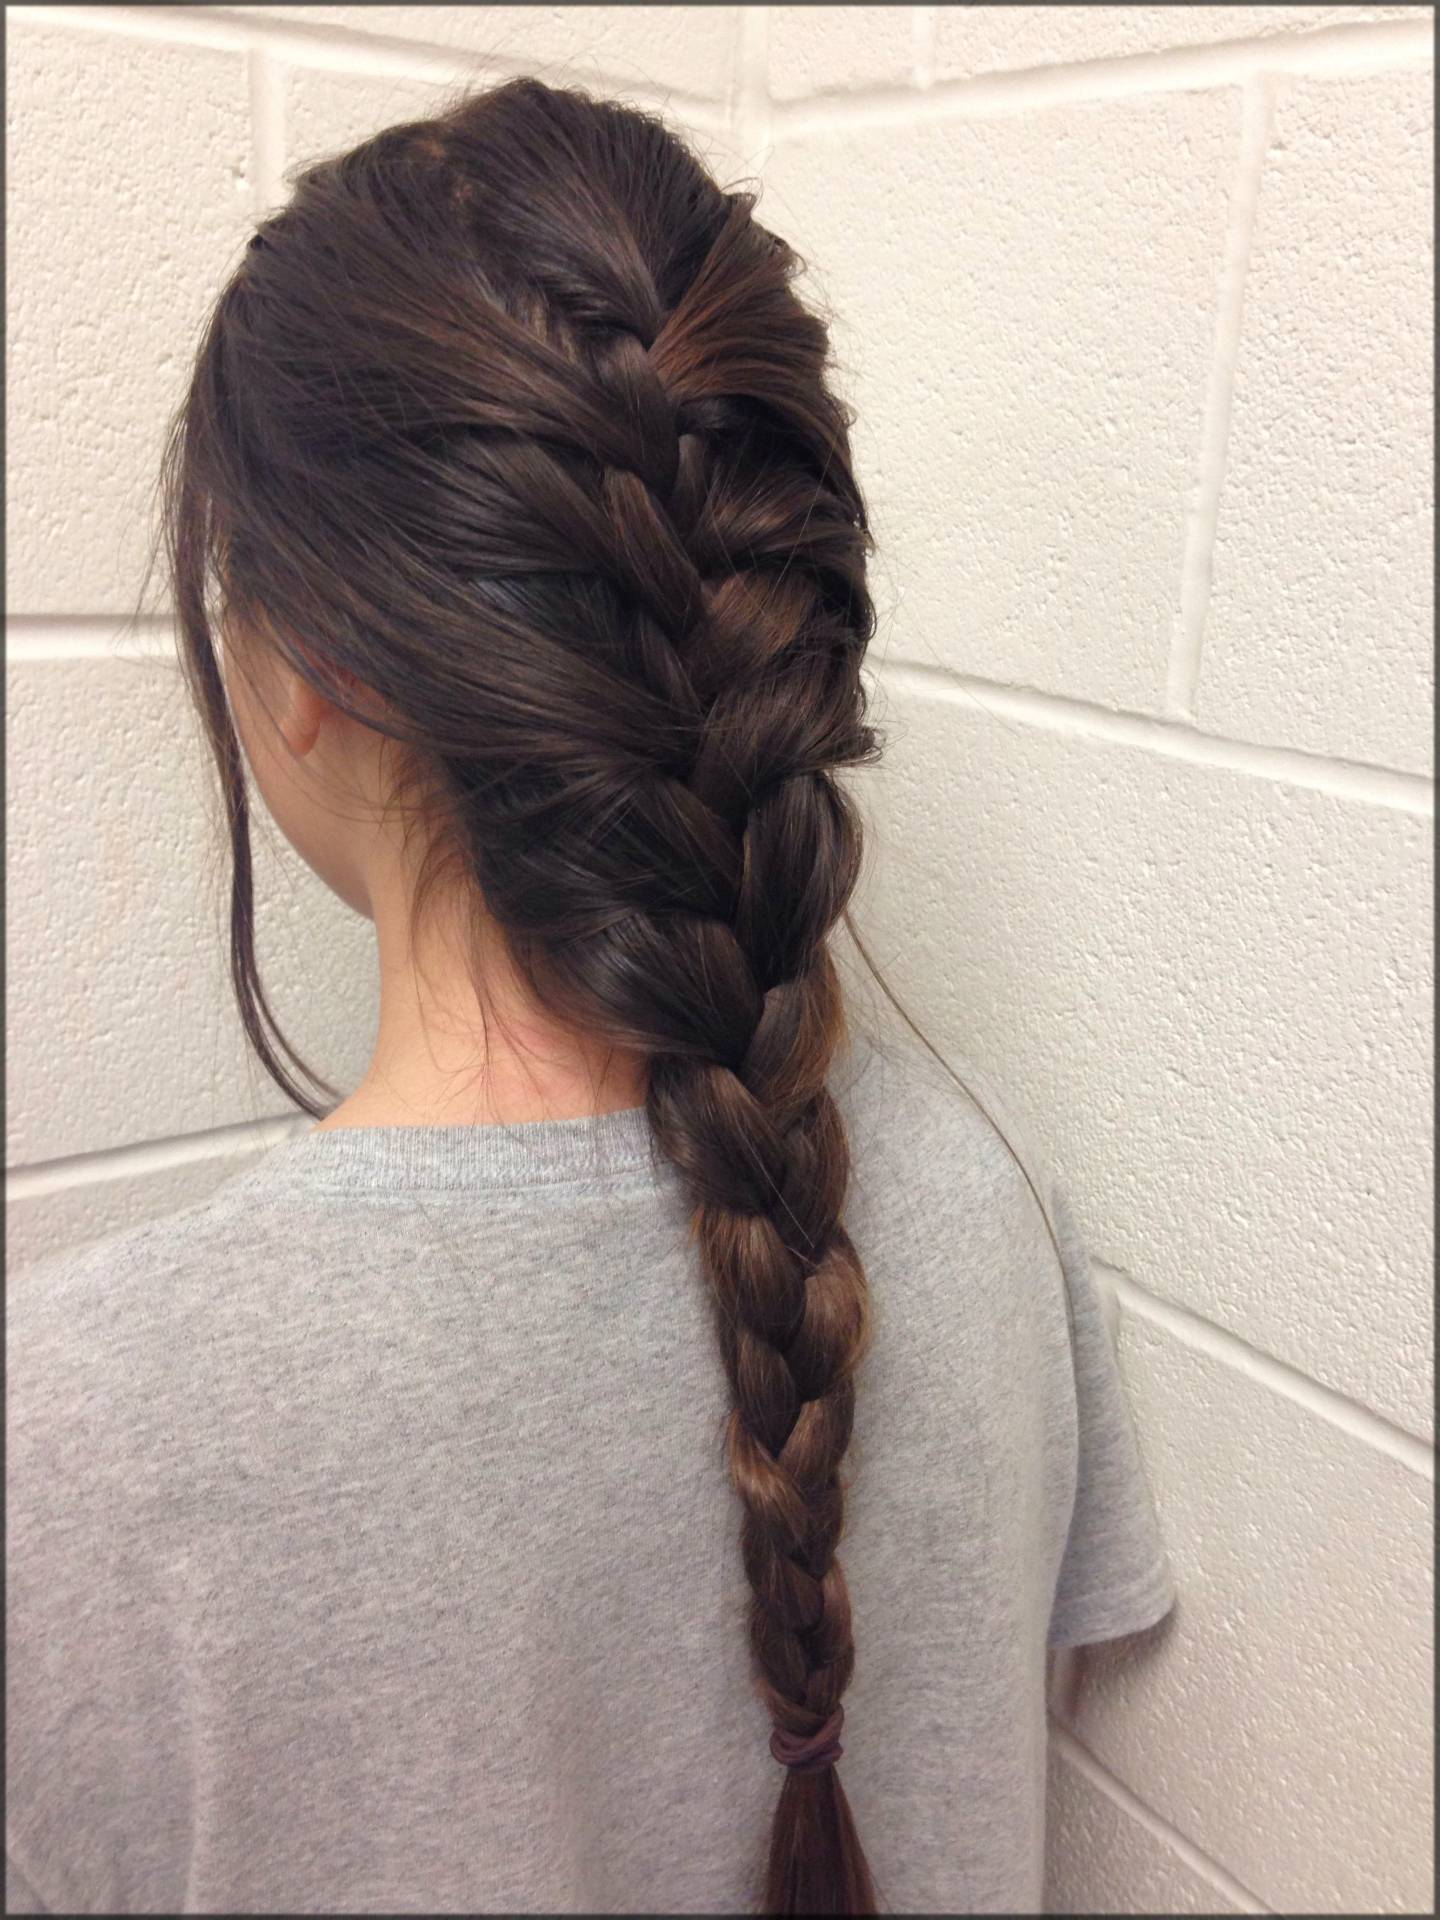 binded braid for women - fall winter beautifl hairstyles